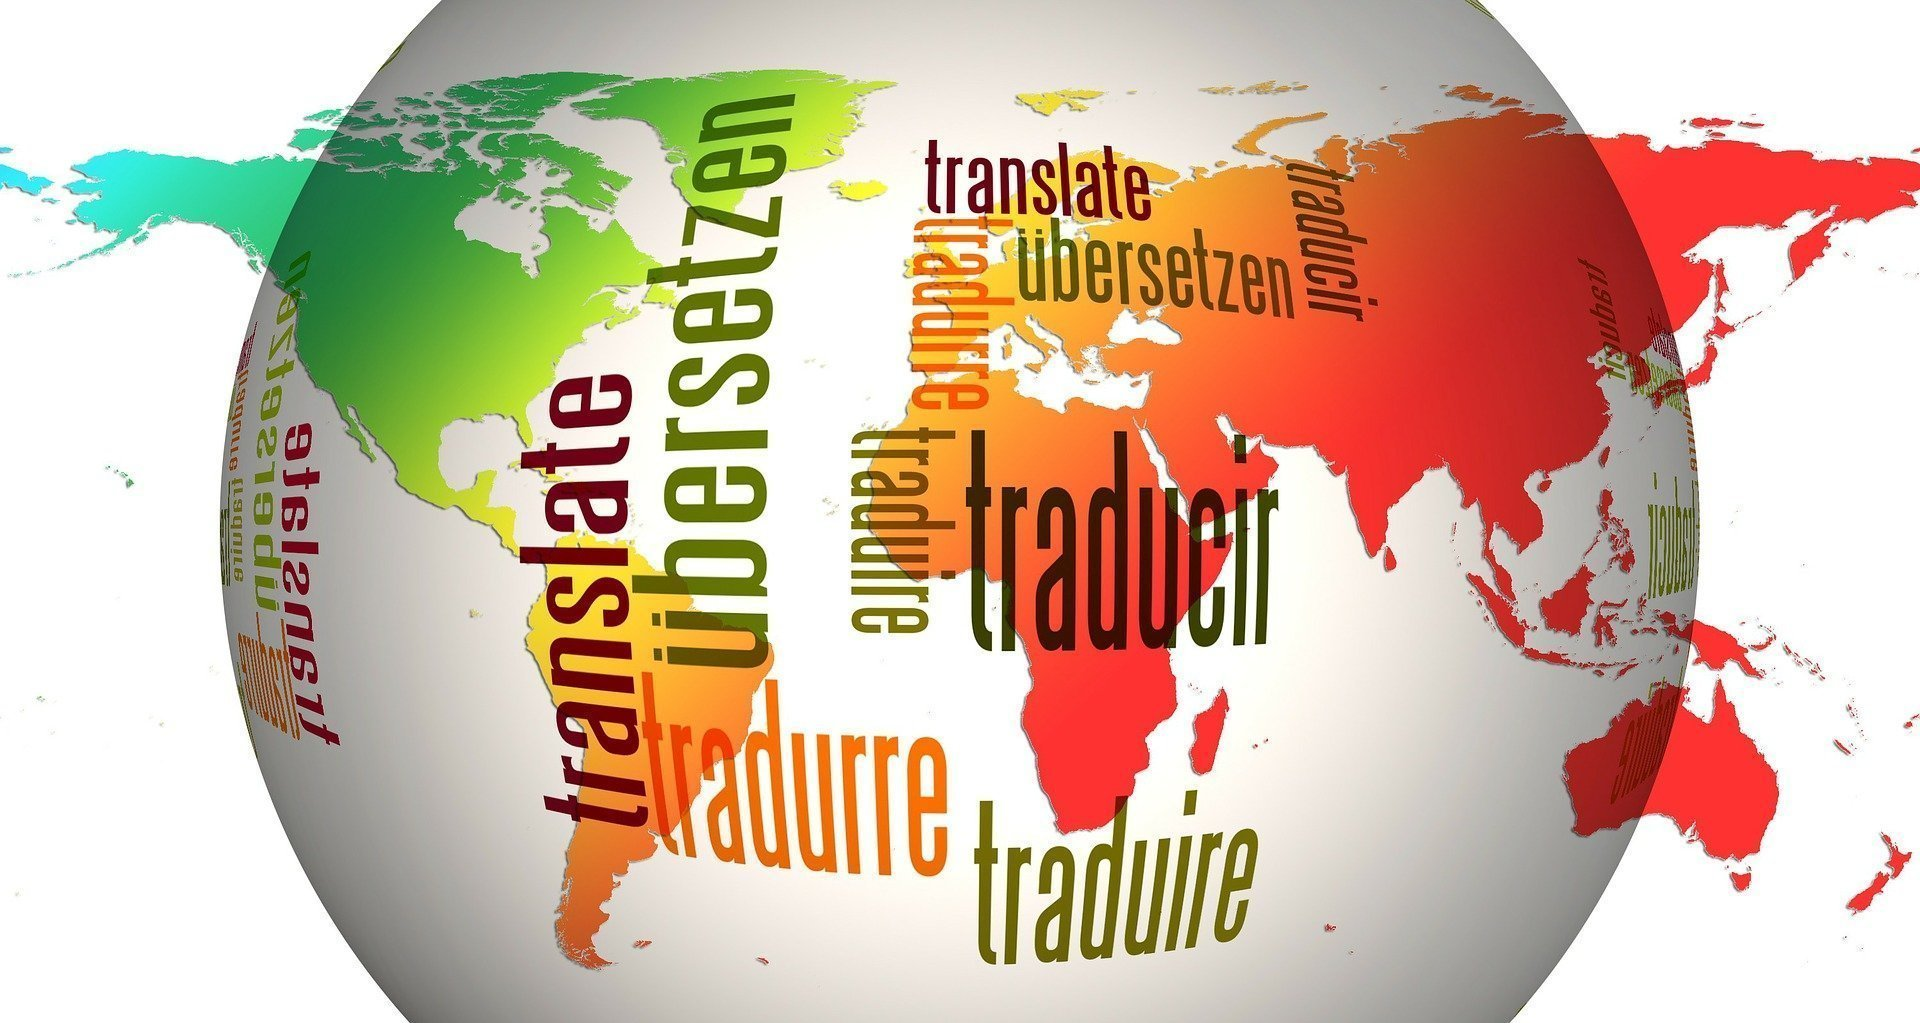 Facebook Creates Machine Translation Model That Can Directly Translate Between 100 Different Languages